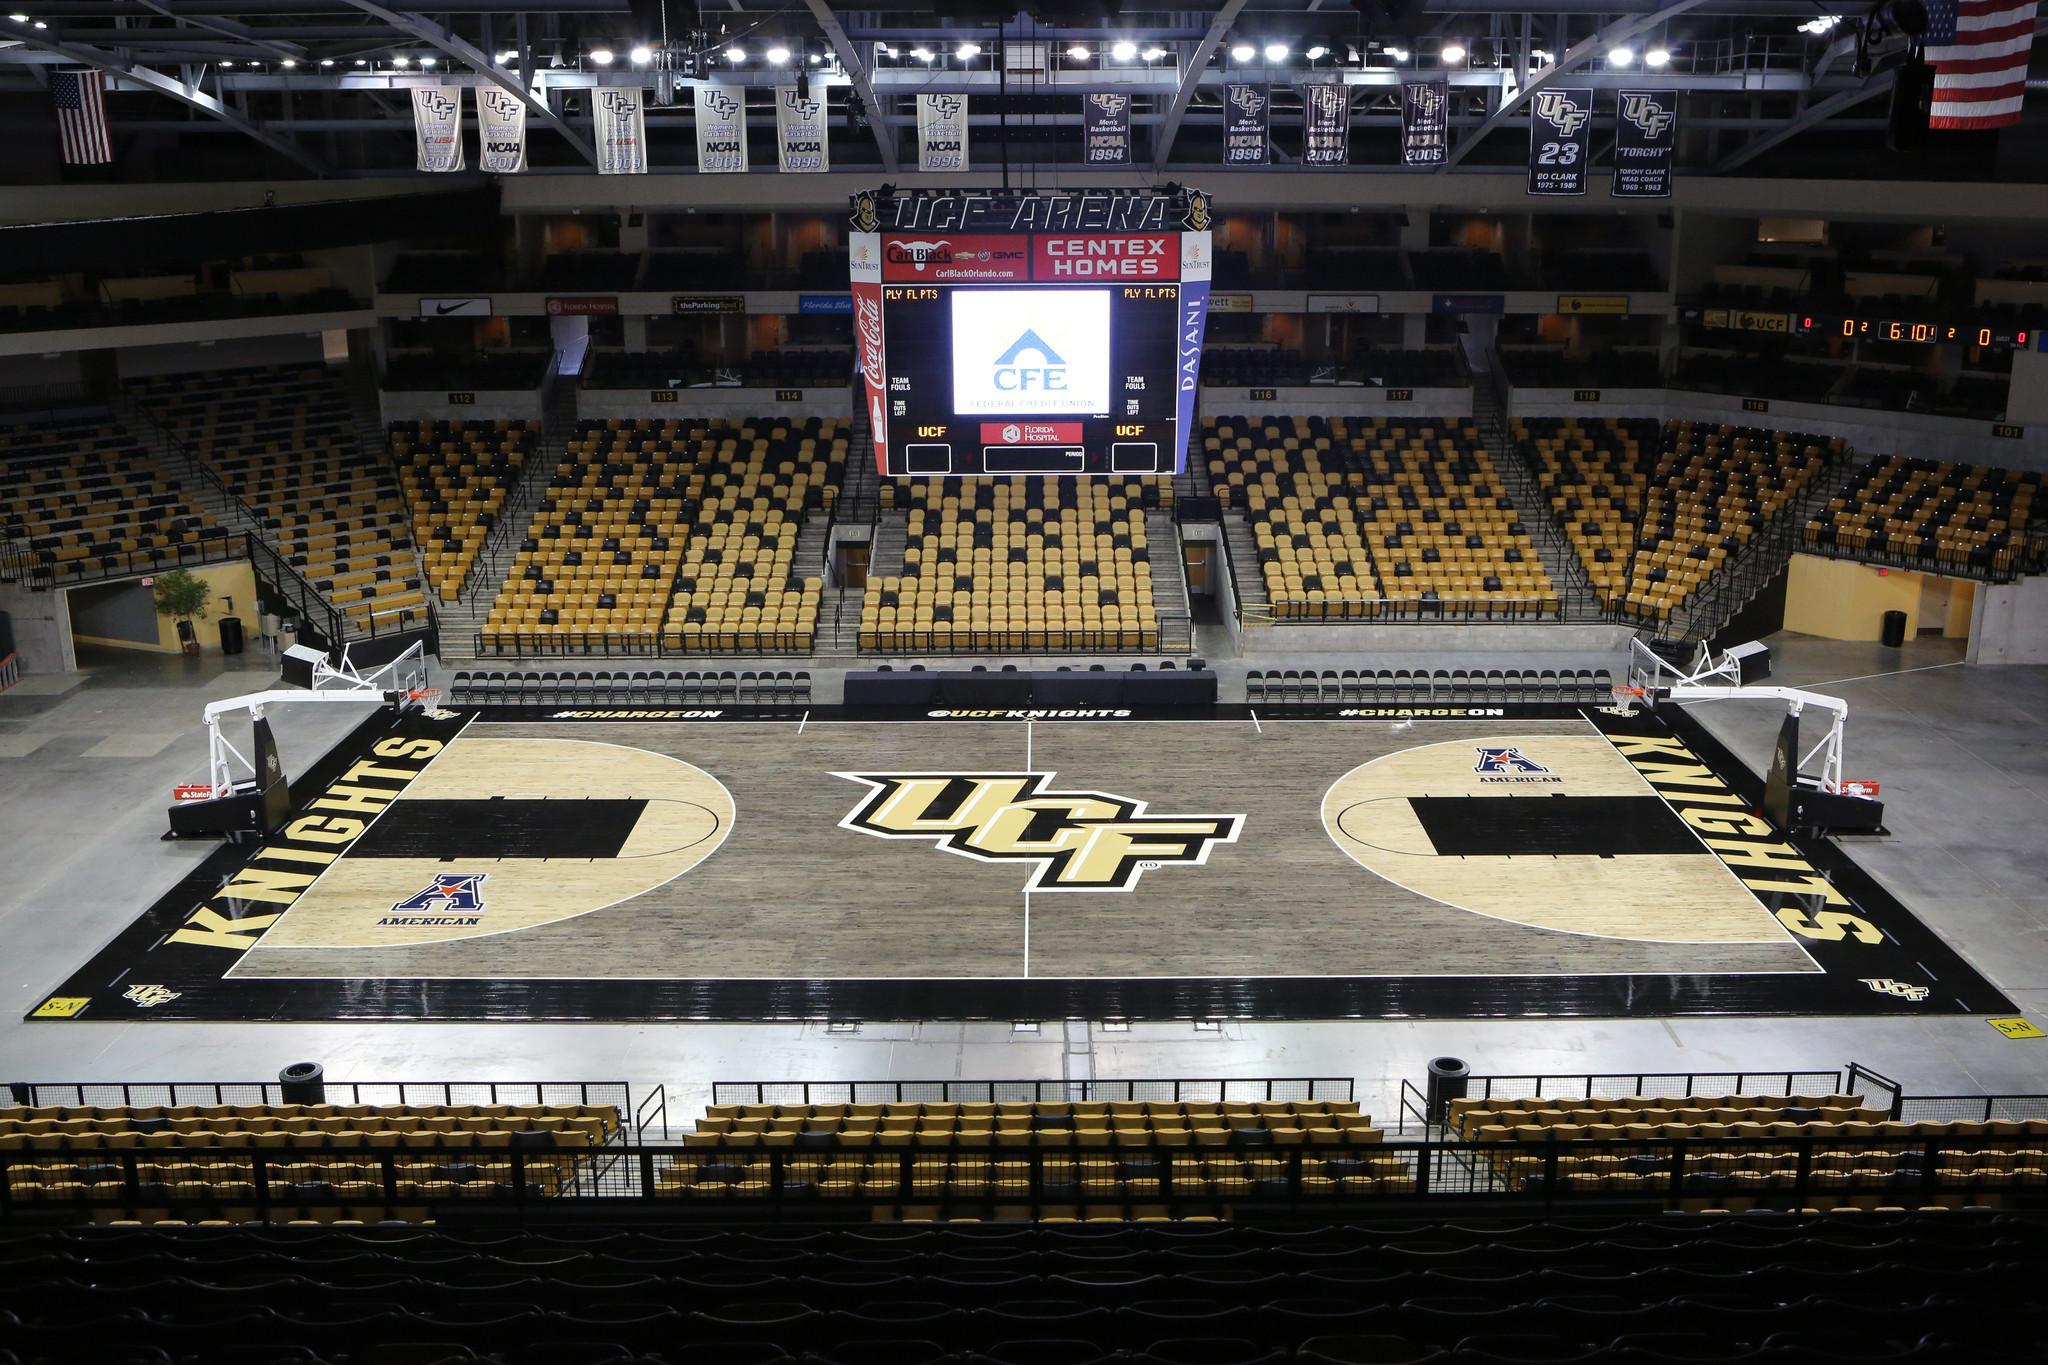 Pictures: UCF's new black basketball court - Orlando Sentinel